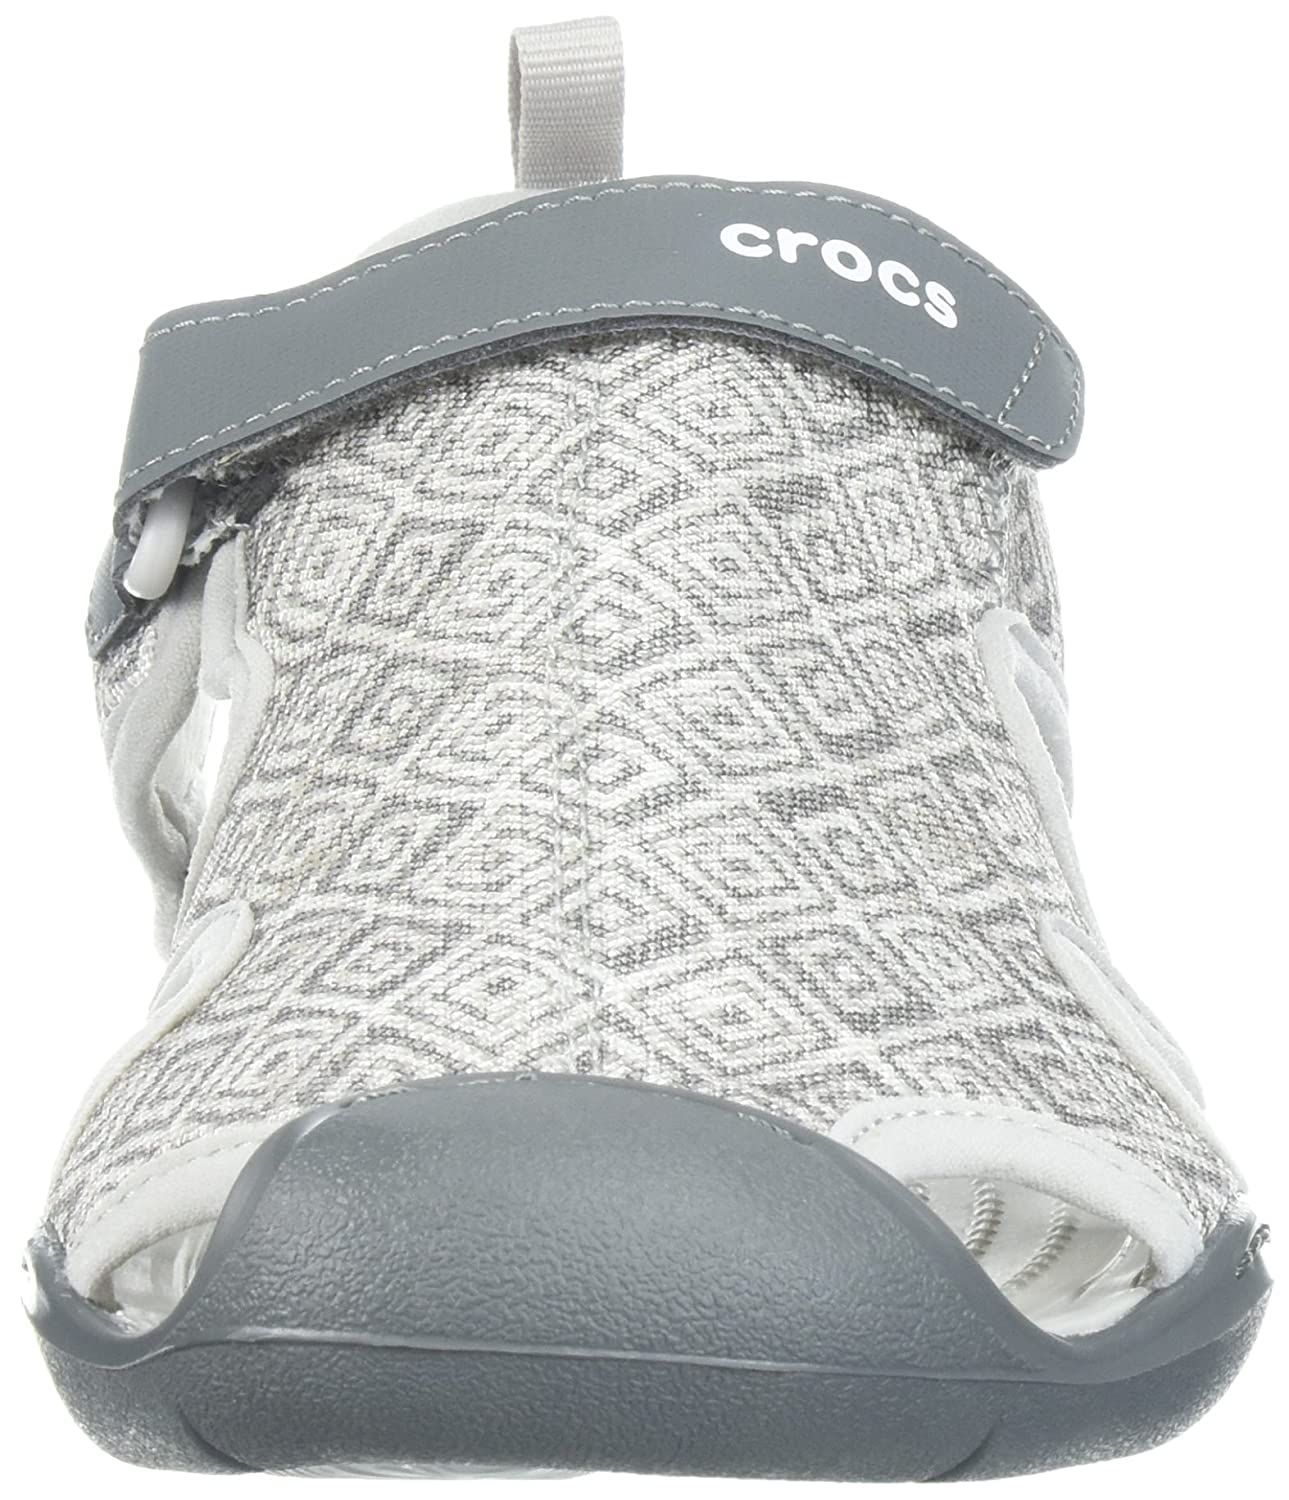 ebb4b14483a2c5 ... Crocs Sandal Women s Swiftwater Graphic Mesh Sandal Crocs B072JN5P4M 8  M US